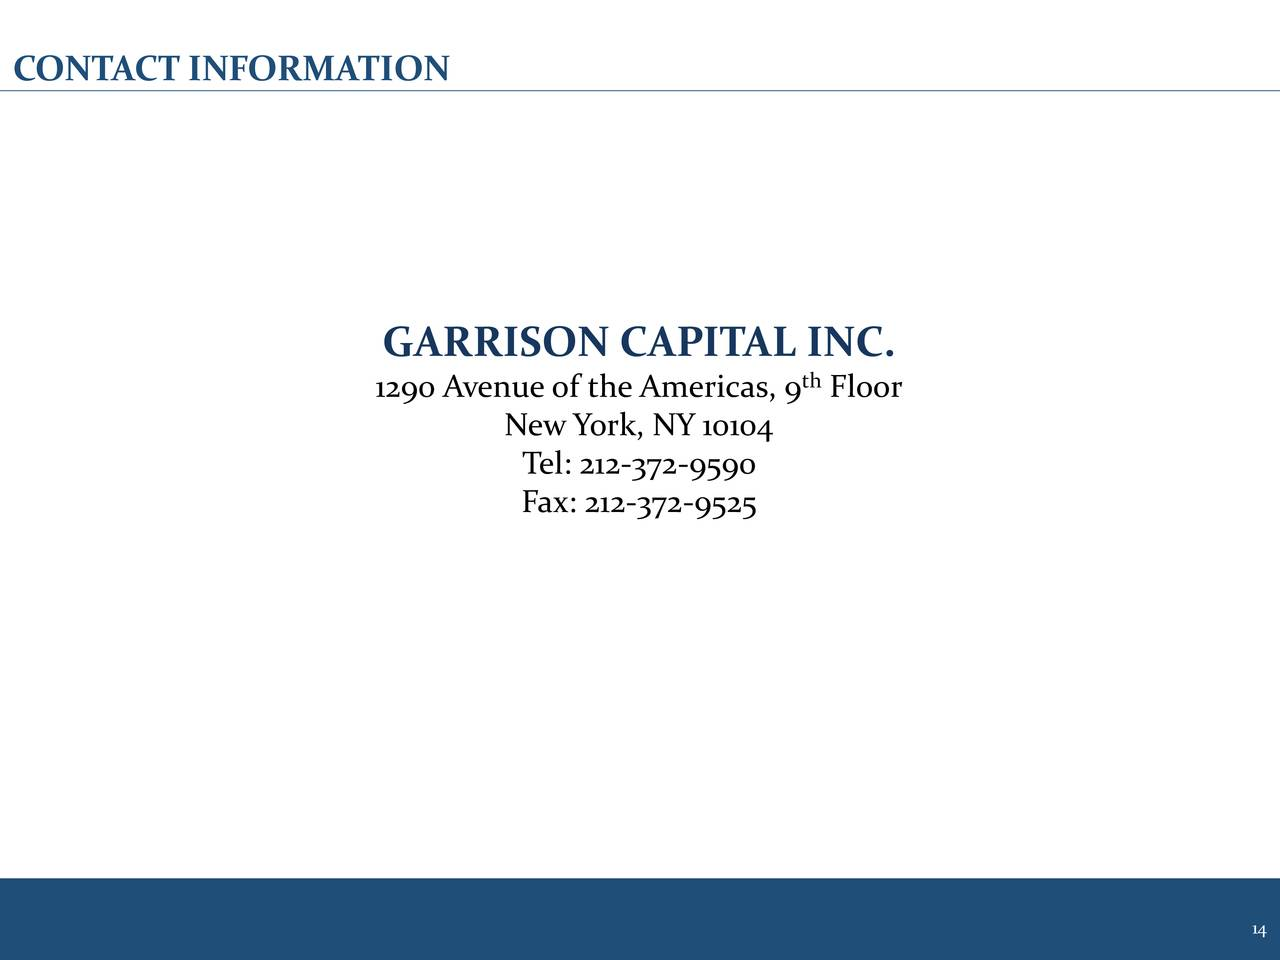 Garrison capital 2017 q4 results earnings call slides for 1290 avenue of the americas sixth floor